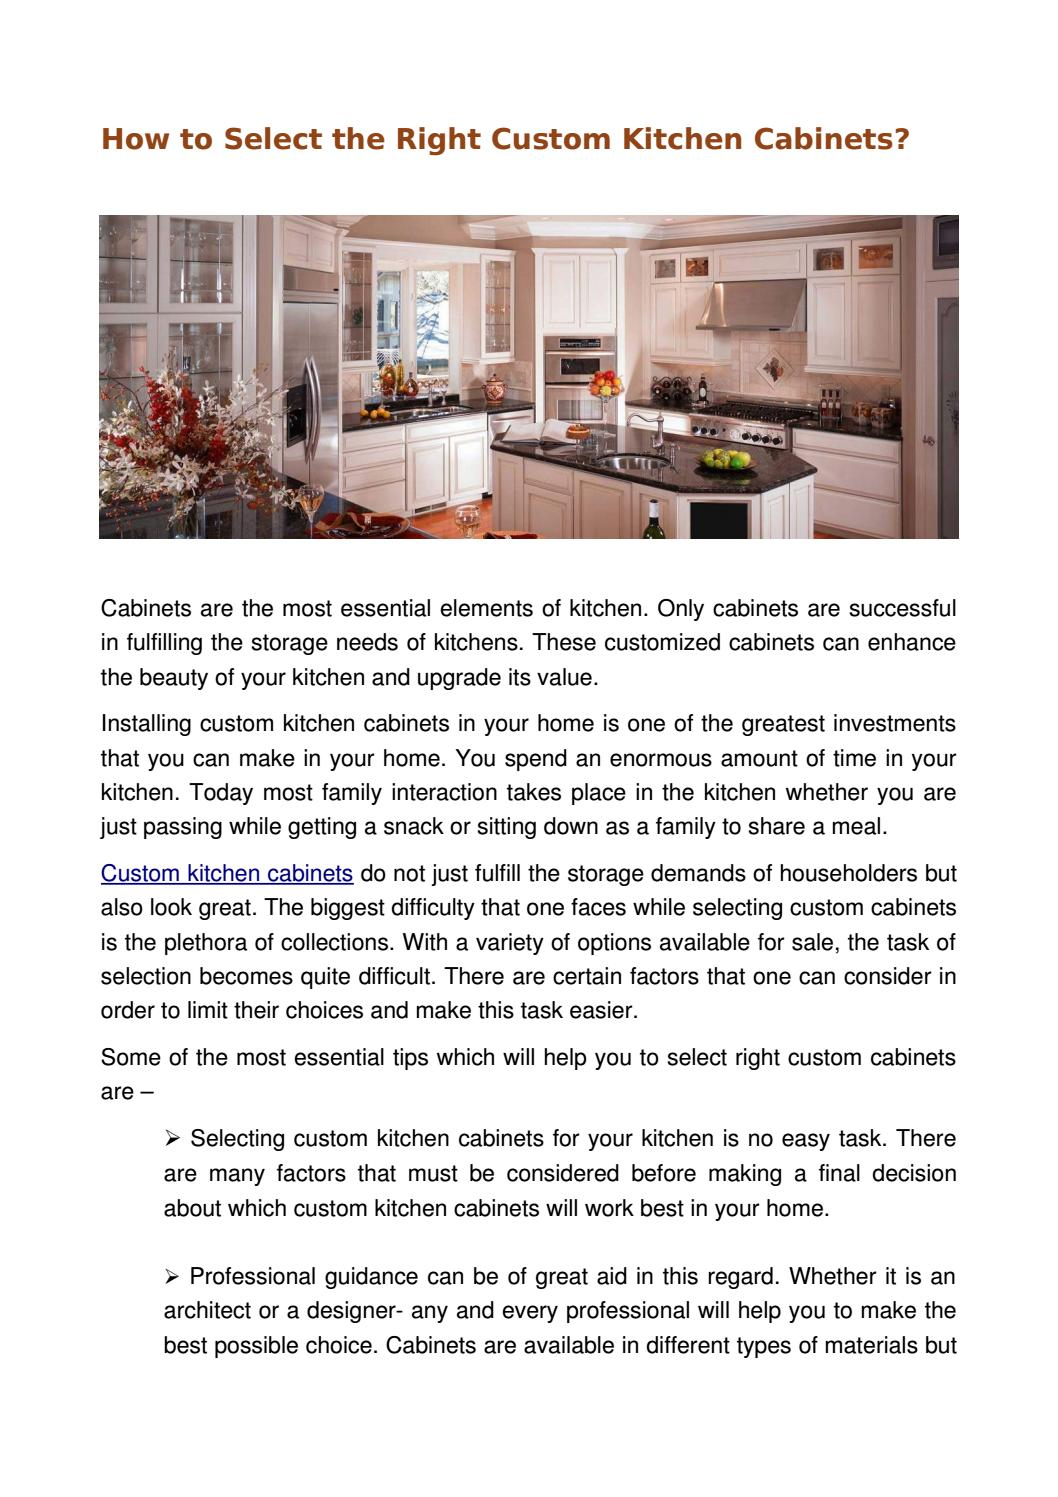 How To Select The Right Custom Kitchen Cabinets How To